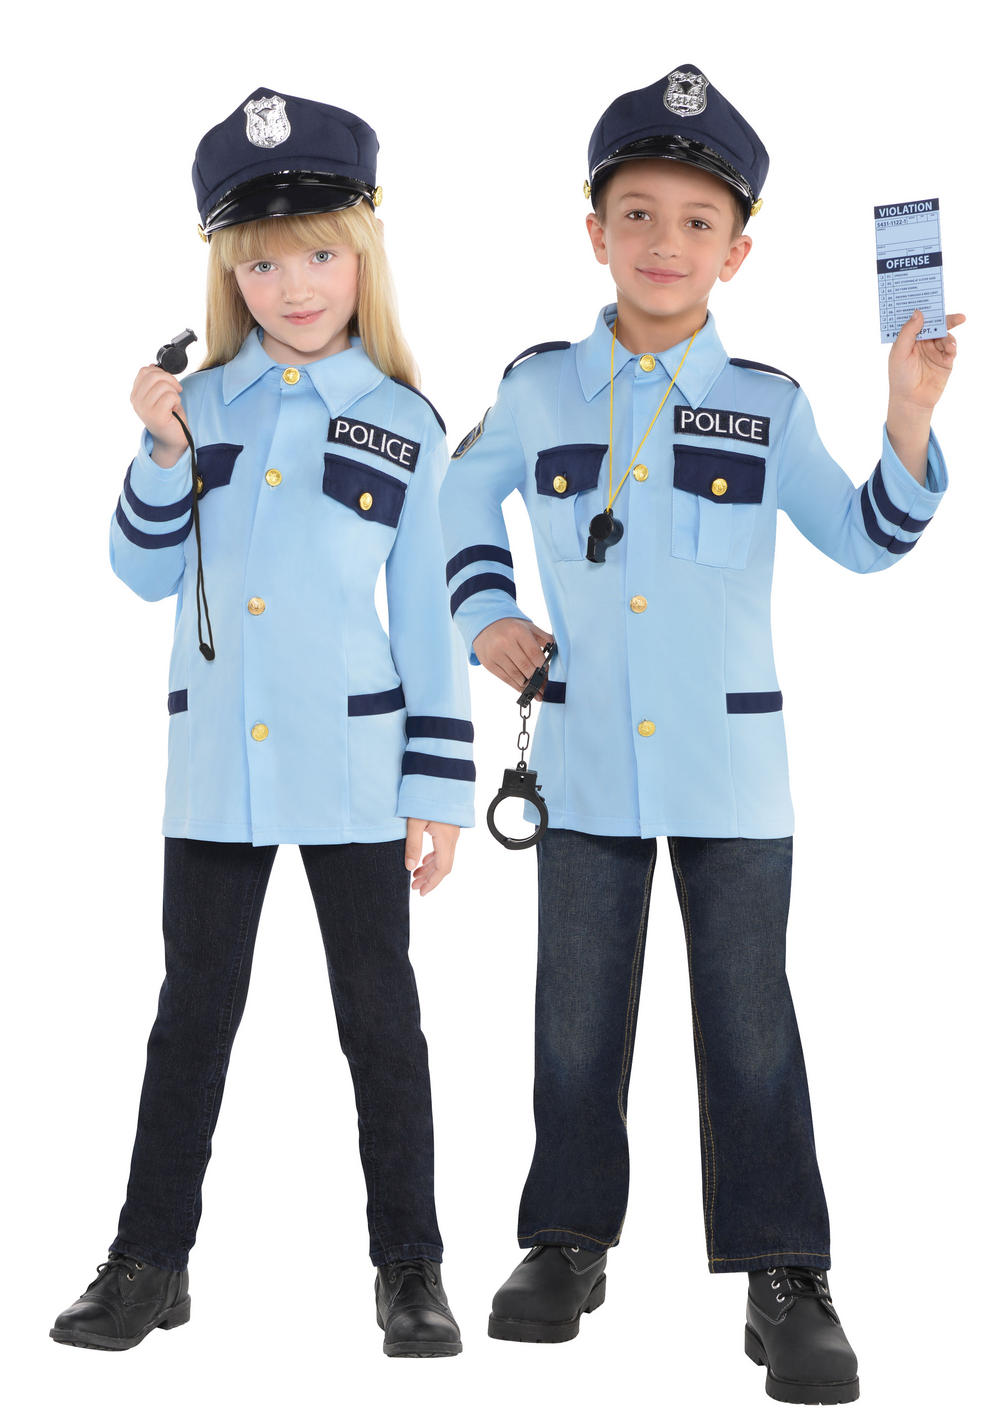 Police Kids Costume Kit | TV Book and Film Costumes | Mega Fancy Dress